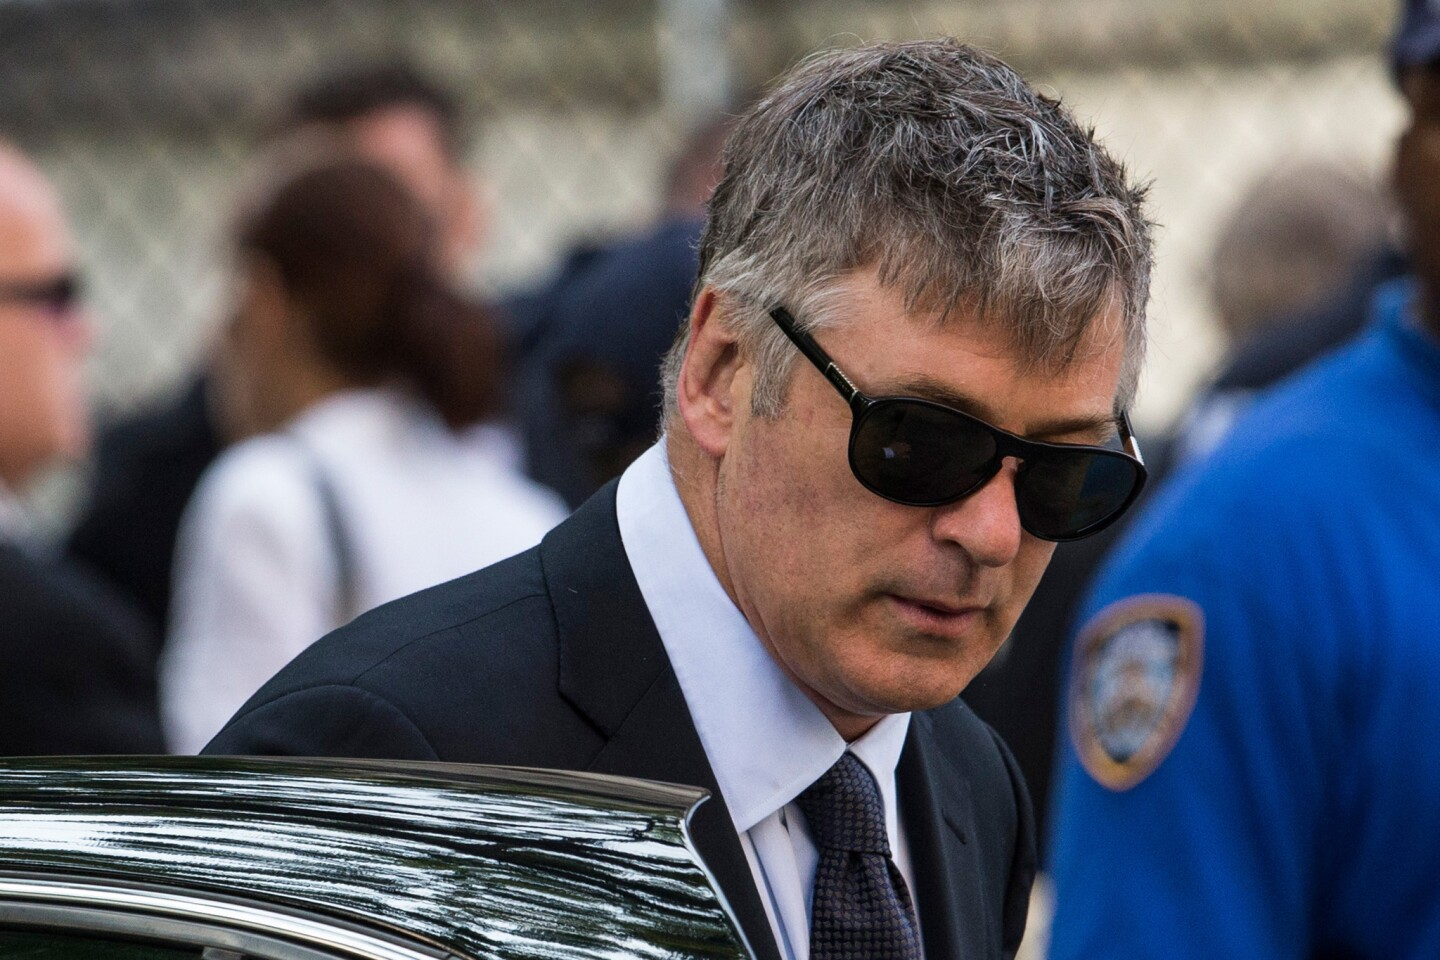 """Alec Baldwin went on a homophobic, profanity-laden online rant in late June before shutting down his Alec Baldwin Foundation Twitter account, all in defense of his pregnant wife, Hilaria, whom a Daily Mail reporter had apparently errantly accused of tweeting while the couple attended James Gandolfini's funeral. Baldwin called Daily Mail writer George Stark a """"toxic little queen"""" and """"lying little bitch,"""" and suggested Stark would enjoy forcible sodomy -- specifically a foot up the rear. The actor also threatened to find the writer and mess him up, only in more profane terms. All this against the backdrop of the tweeting story being off-base in the first place: Hilaria and Alec had left the funeral discreetly through a side door about 45 minutes in, after the eulogies but before Communion. The yoga instructor hadn't even had her phone with her, she said on Twitter. Turns out the writer didn't consider time zones when looking at time stamps on the tweets. MORE: Alec Baldwin loses it in Twitter rant, hurls homophobic slurs"""